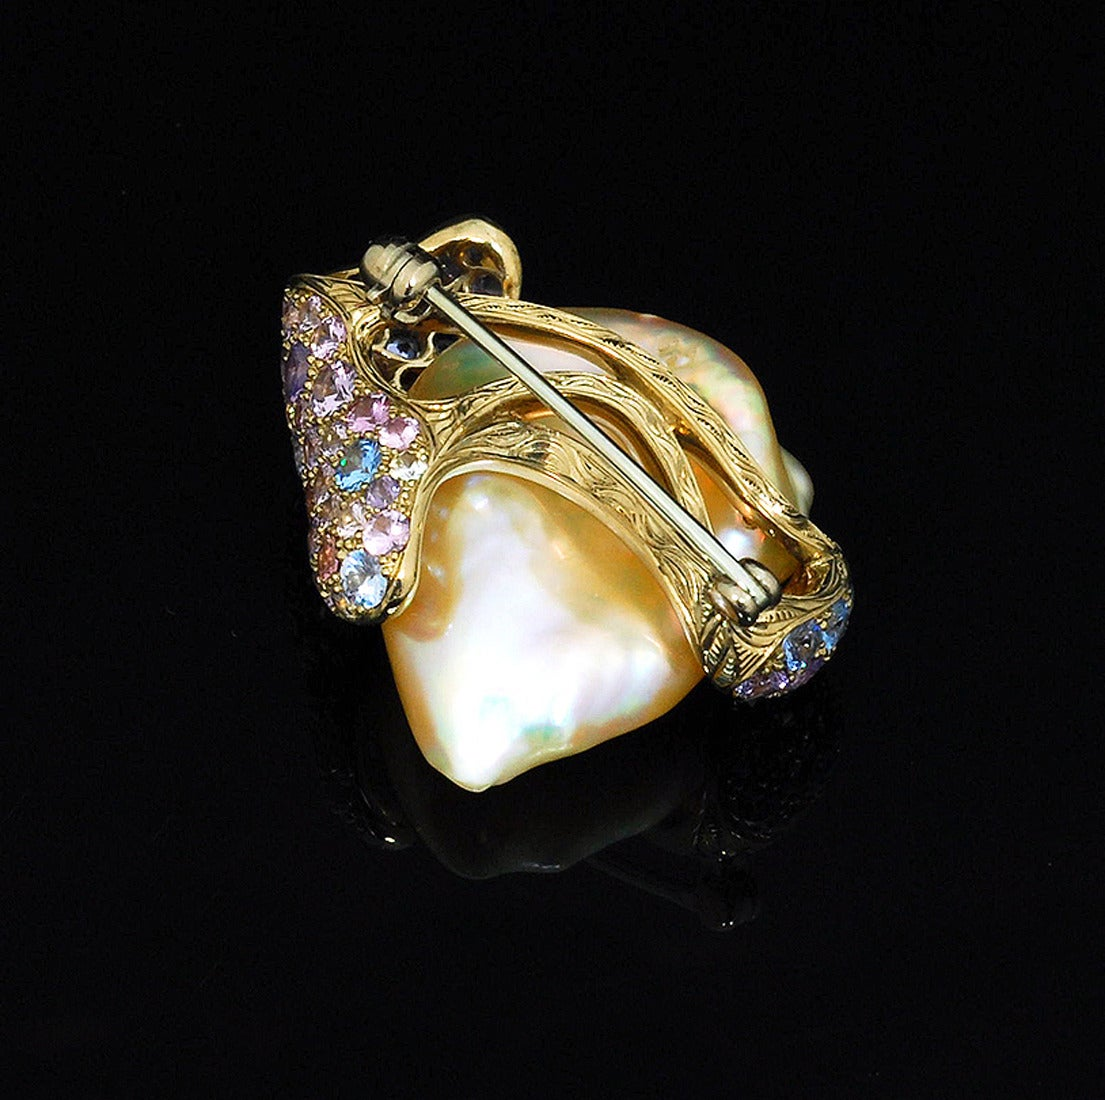 This brooch features a delicate peach Chinese freshwater pearl set in 18K yellow gold, accentuated with an assortment of approximately 66 multicolored diamonds and sapphires.